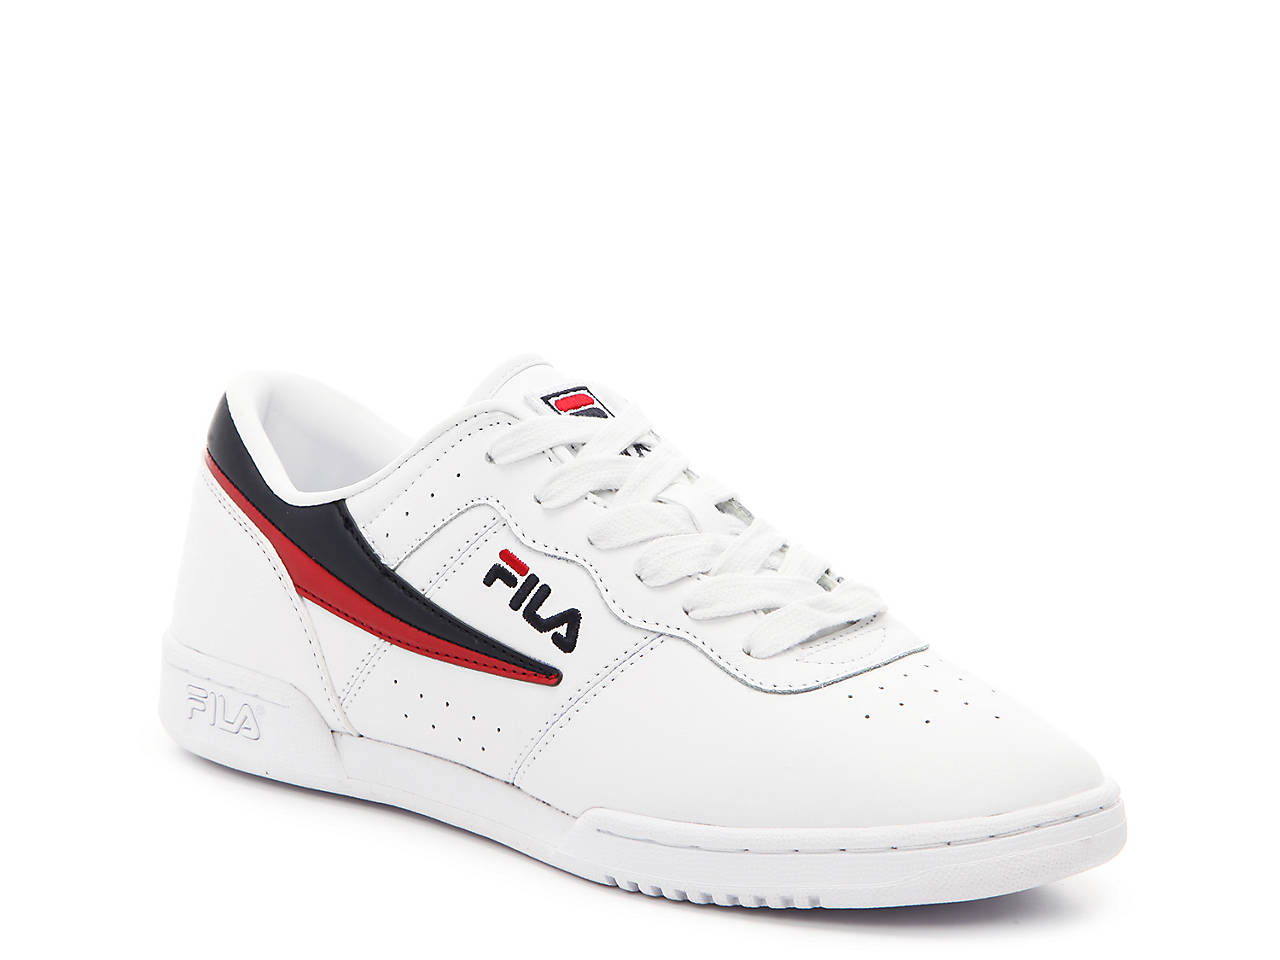 b3ee23d8033e Fila Original Fitness Sneaker - Women s Women s Shoes